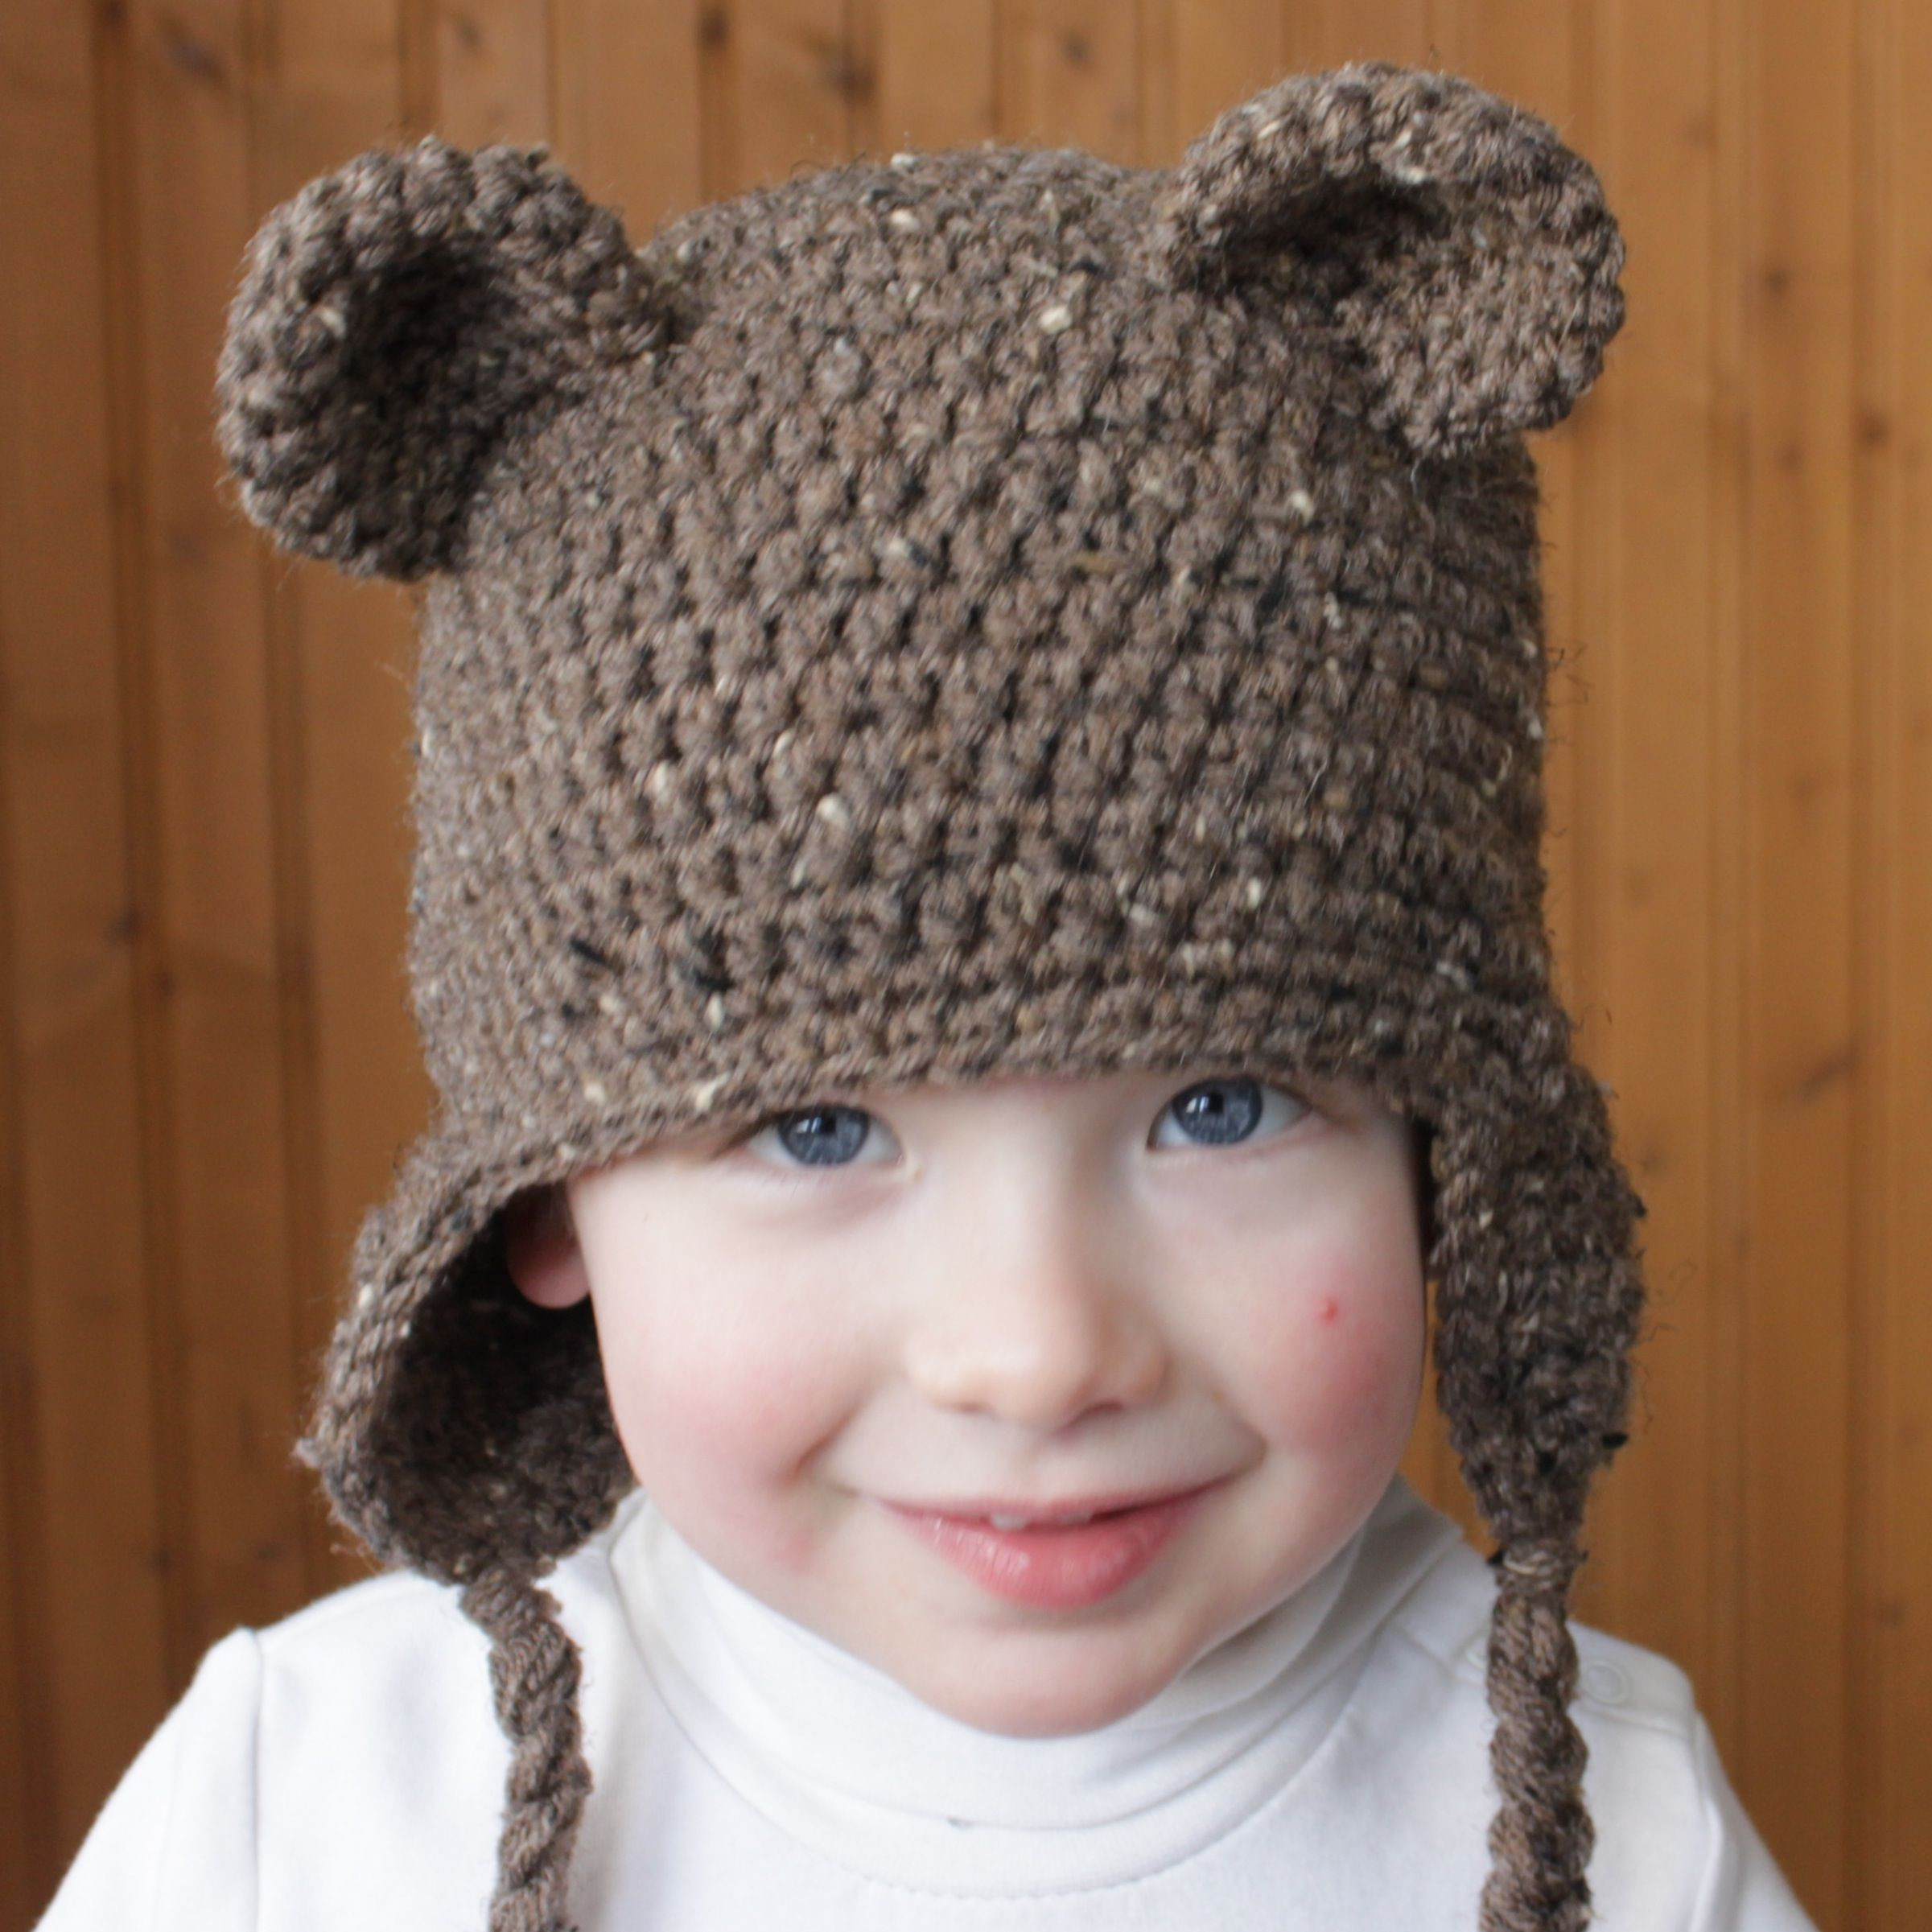 bear hat ear pattern So I think I will just have a hat